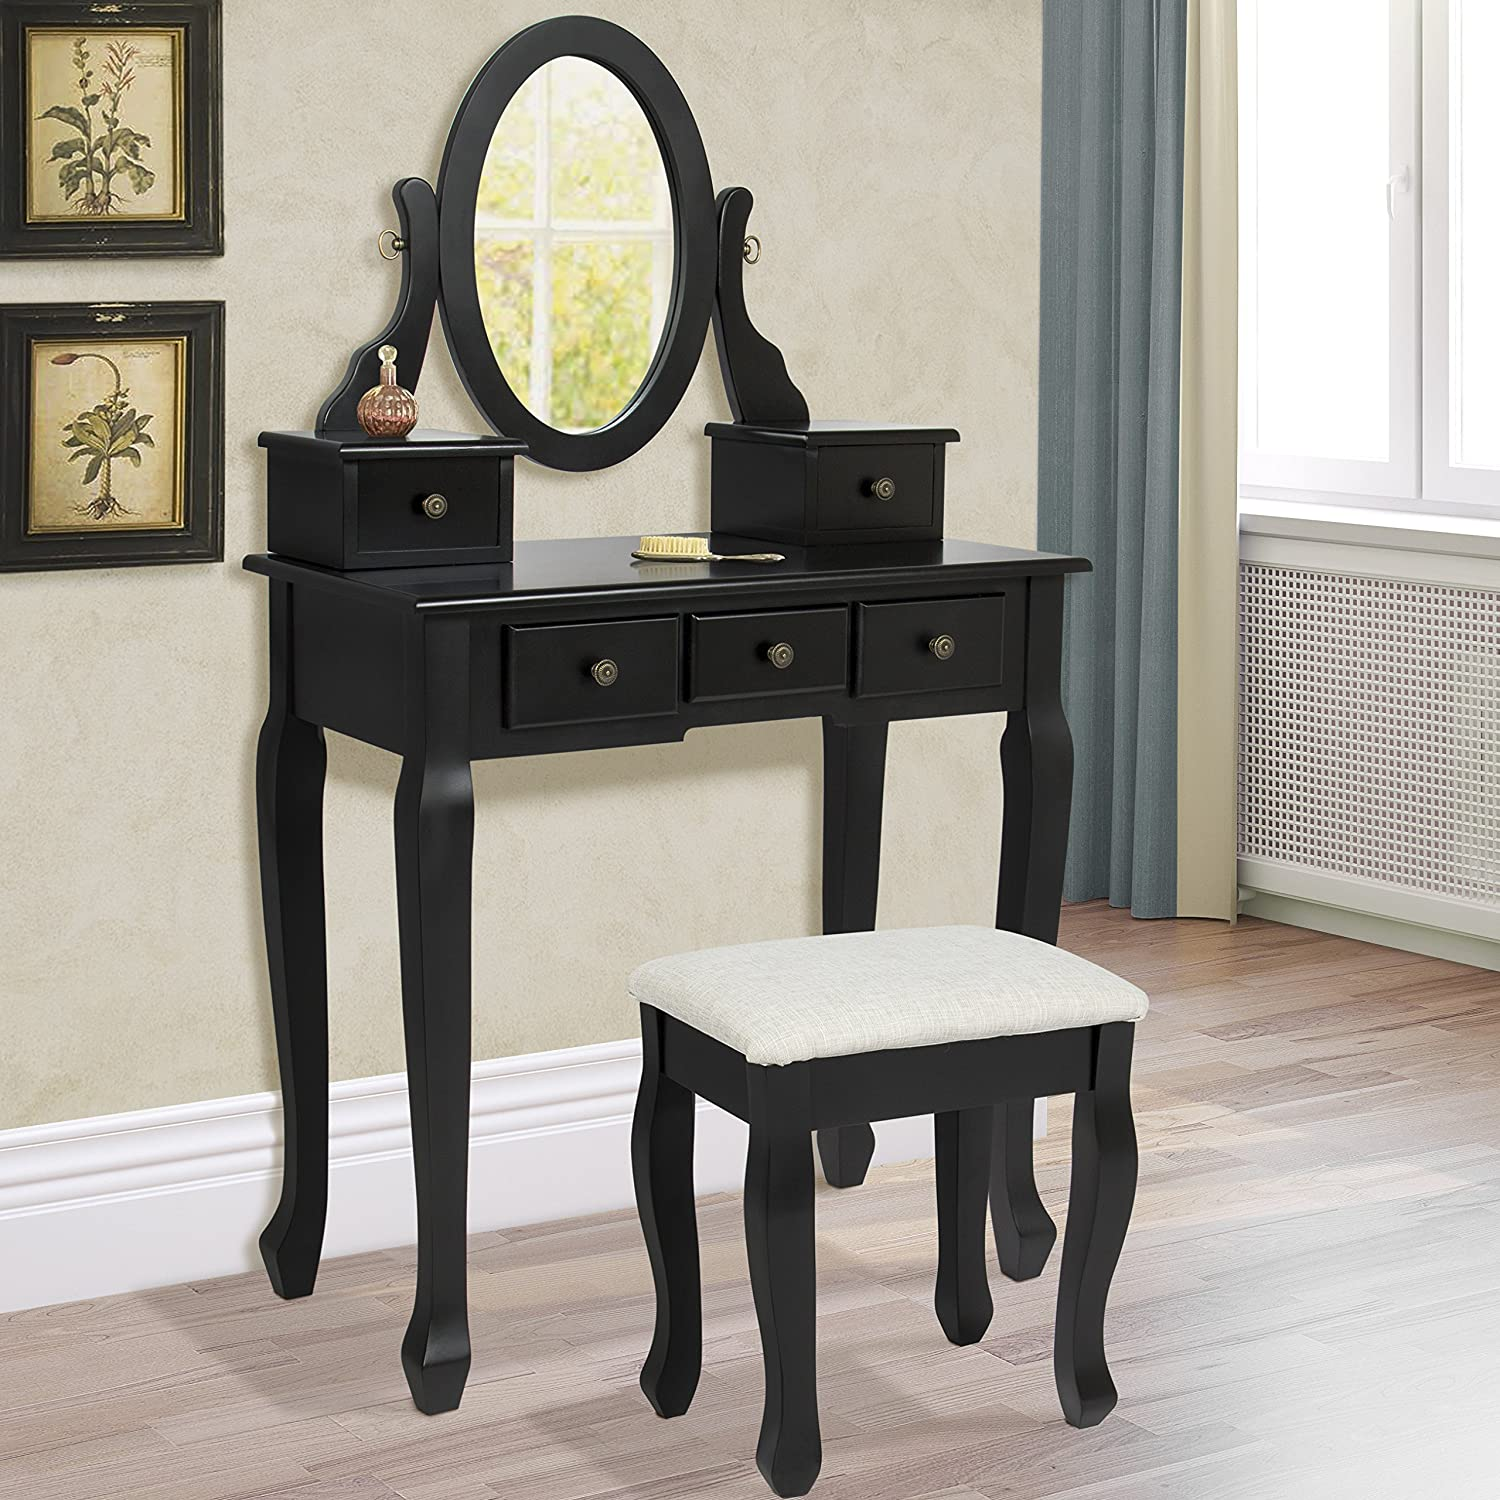 Vanities Amazoncom - Vanity table